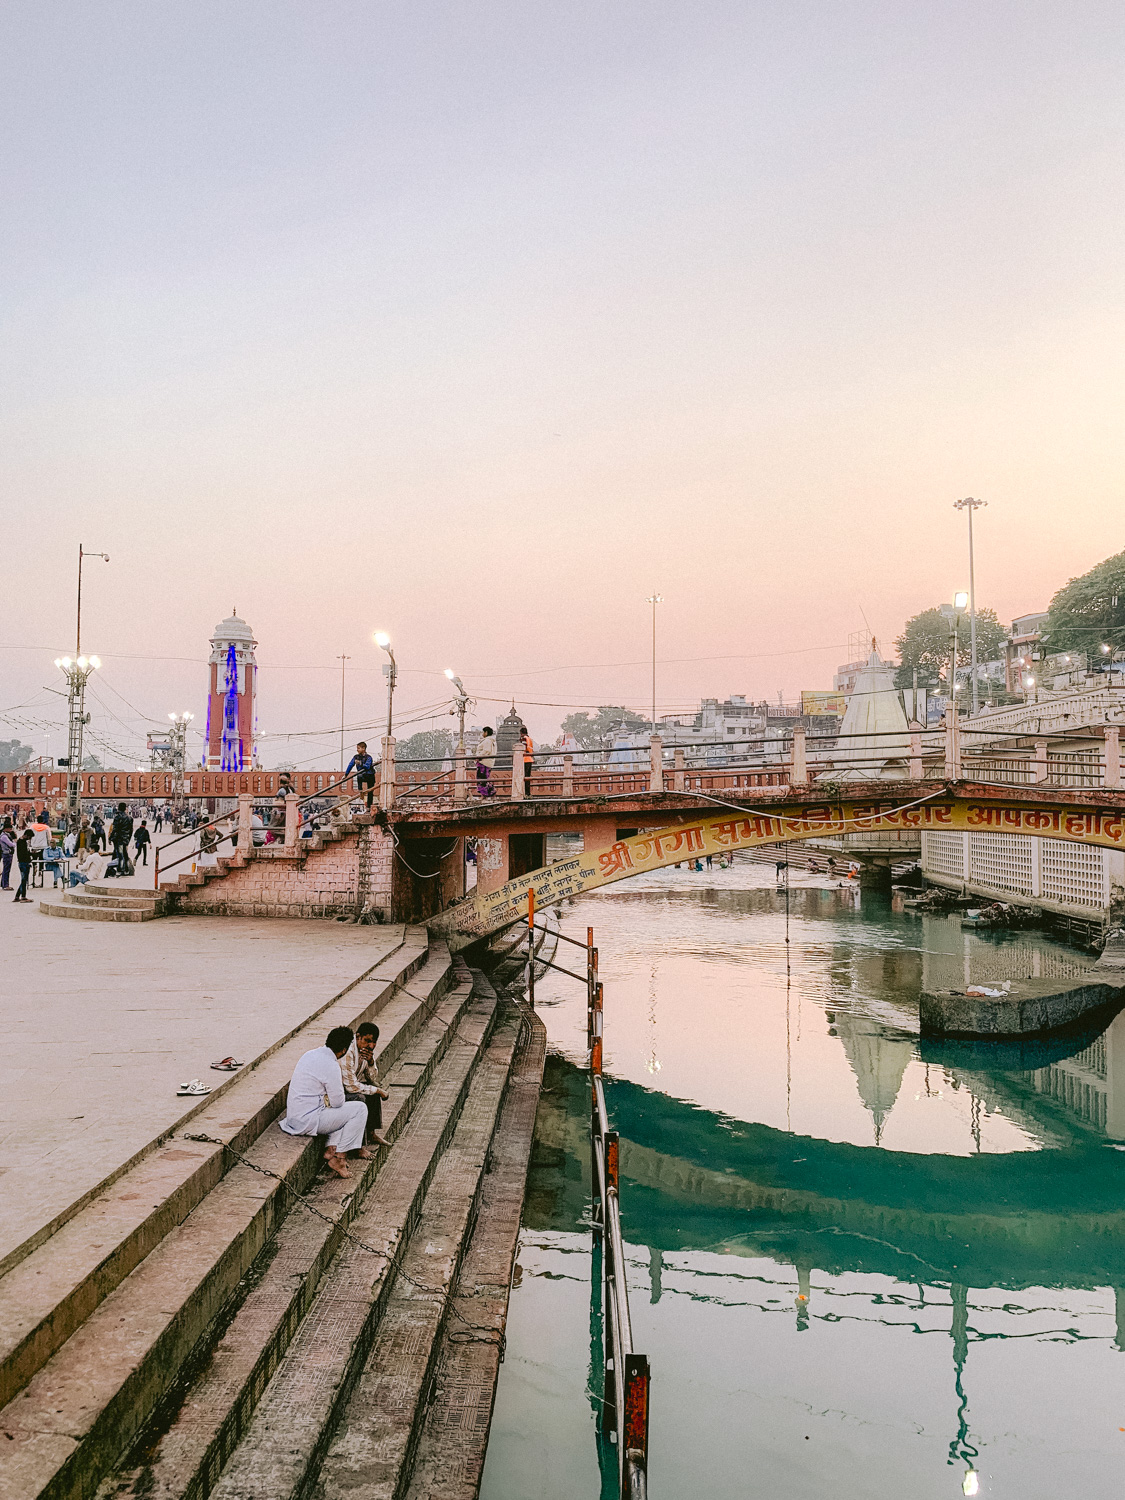 """HAR KI PAURI - """"Har Ki Pauri is a famous ghat on the banks of the Ganges in Haridwar in Uttarakhand state in India. This revered place is the major landmark of the holy city of Haridwar. Literally,"""